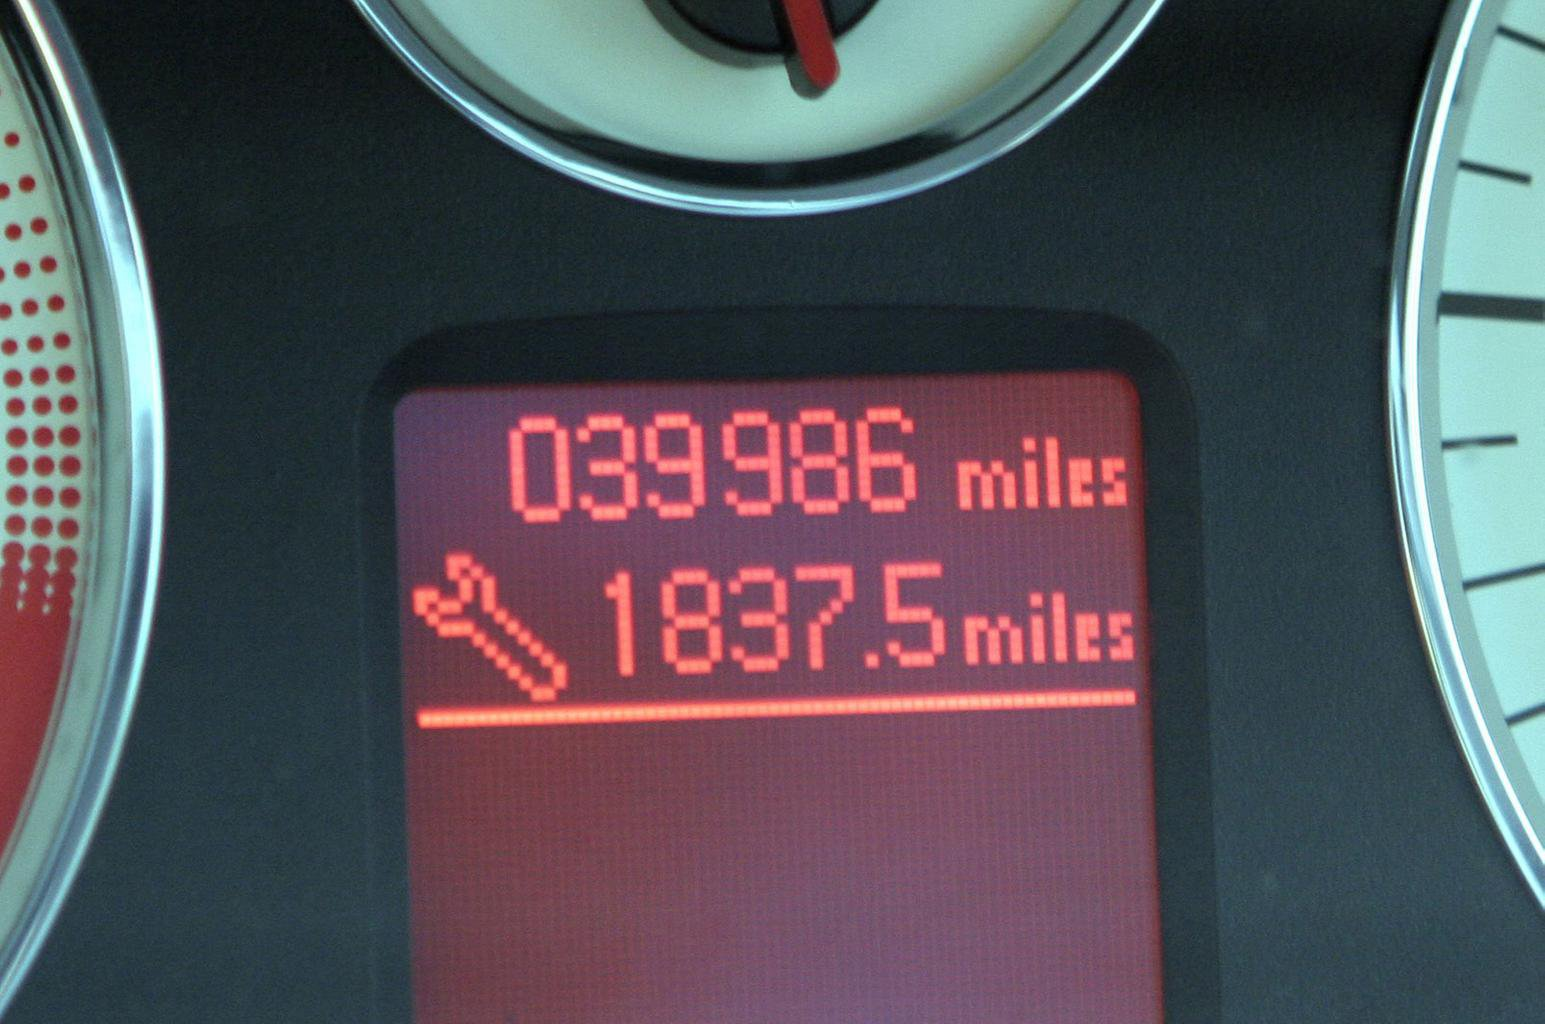 Check the mileage